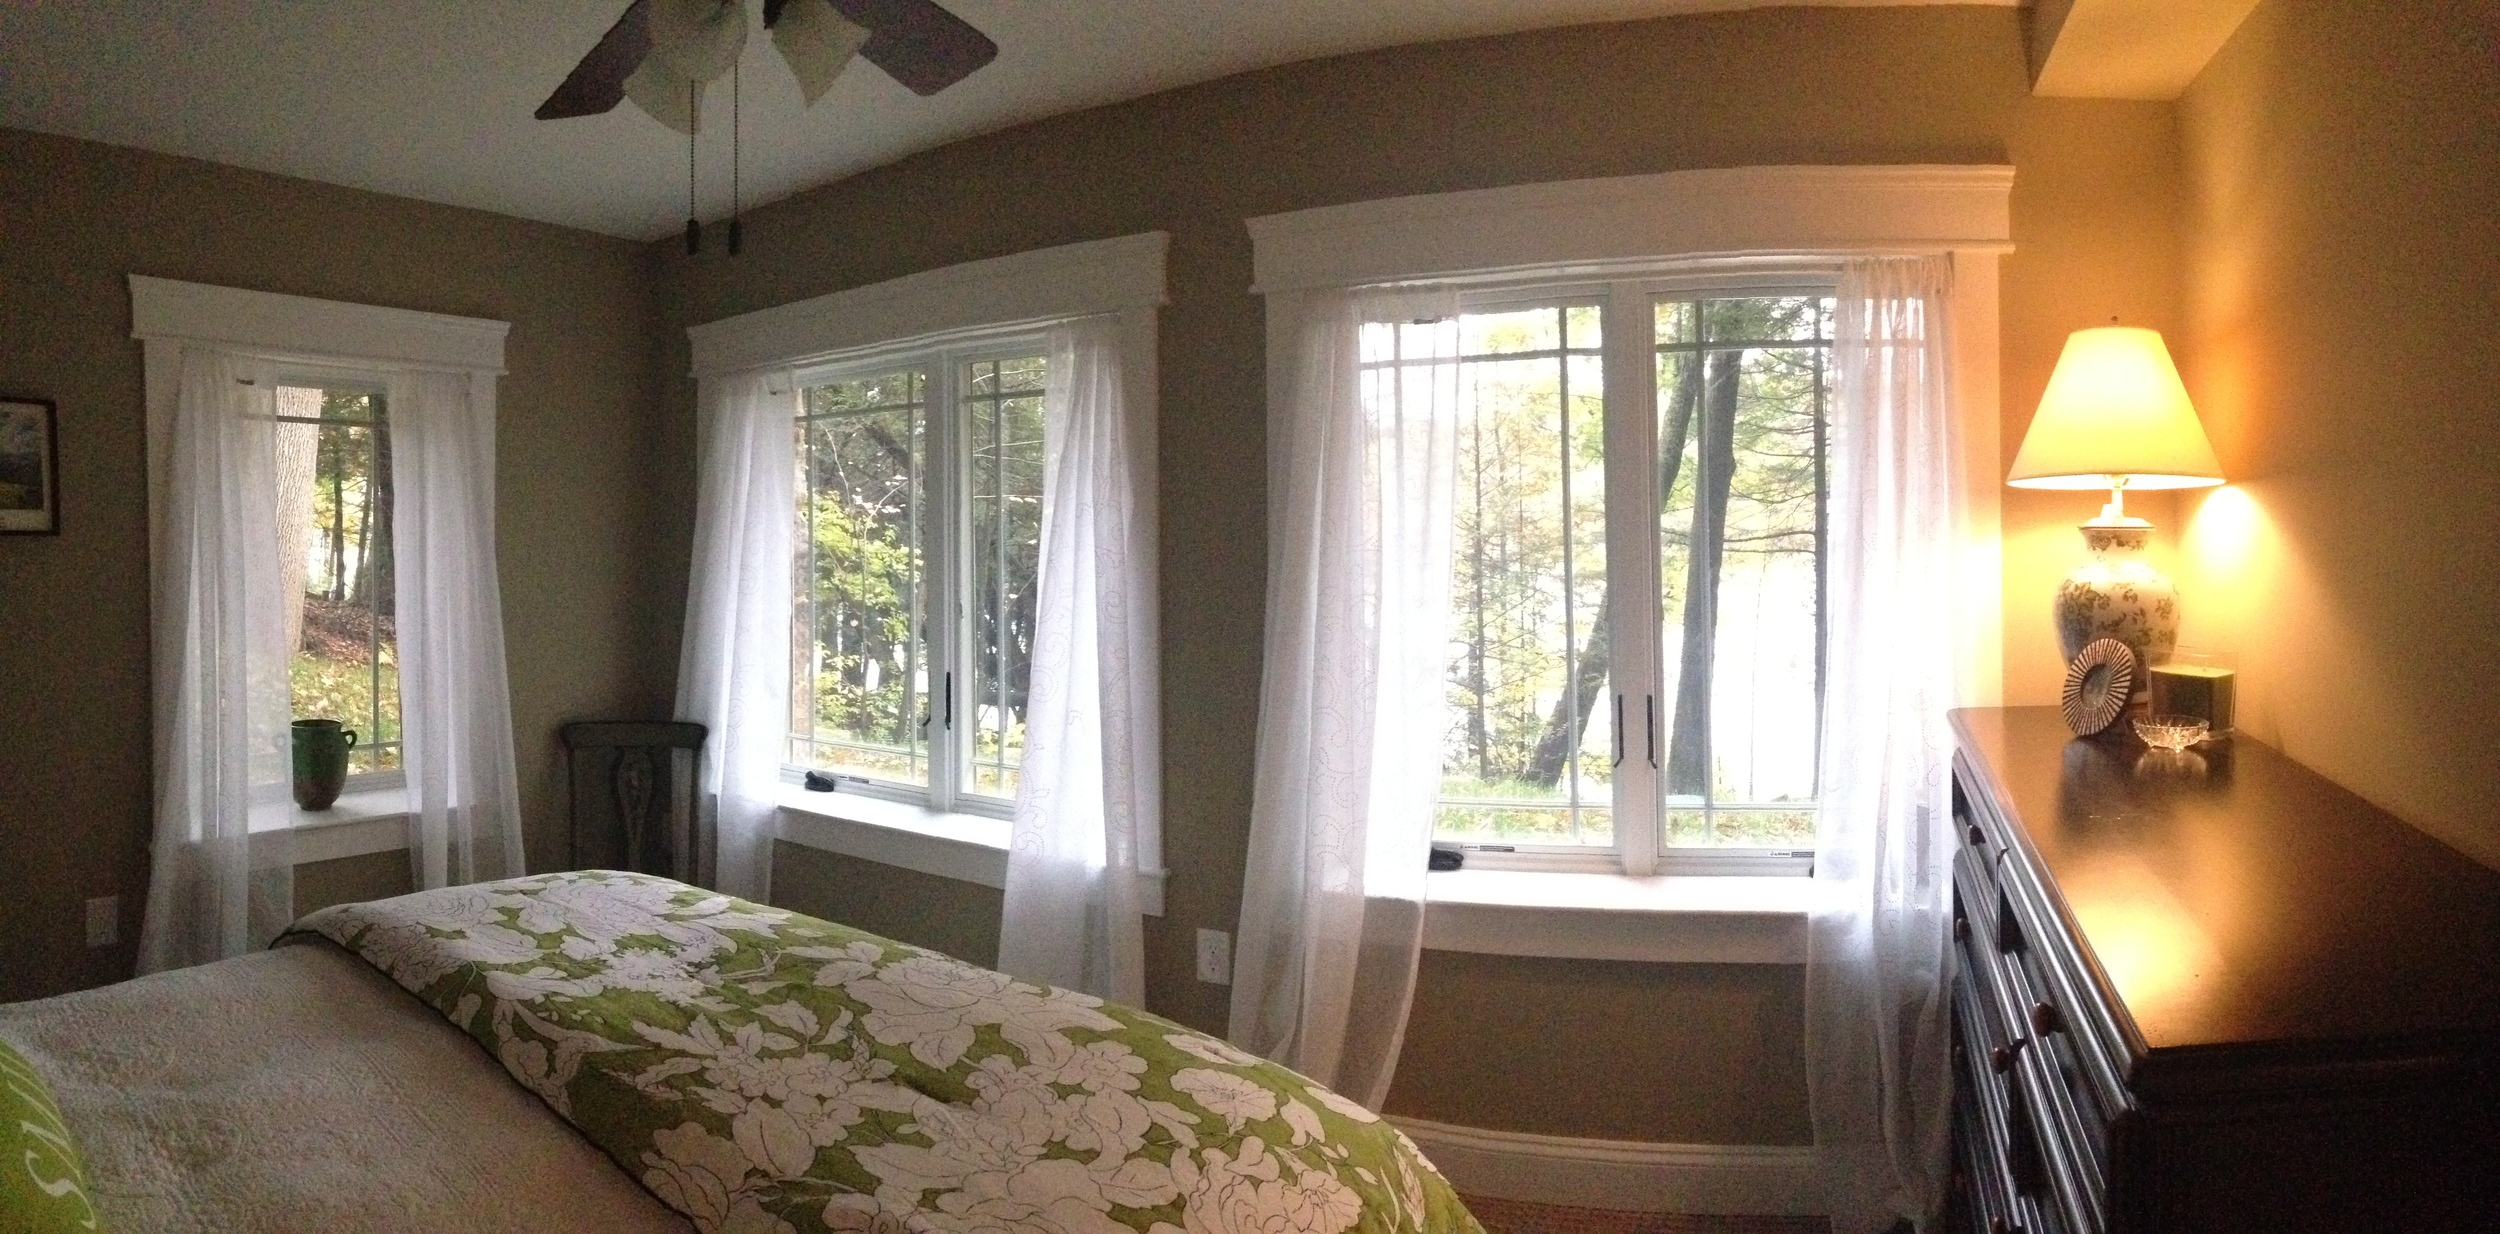 New basement level bedroom with lots of glass facing the lake.